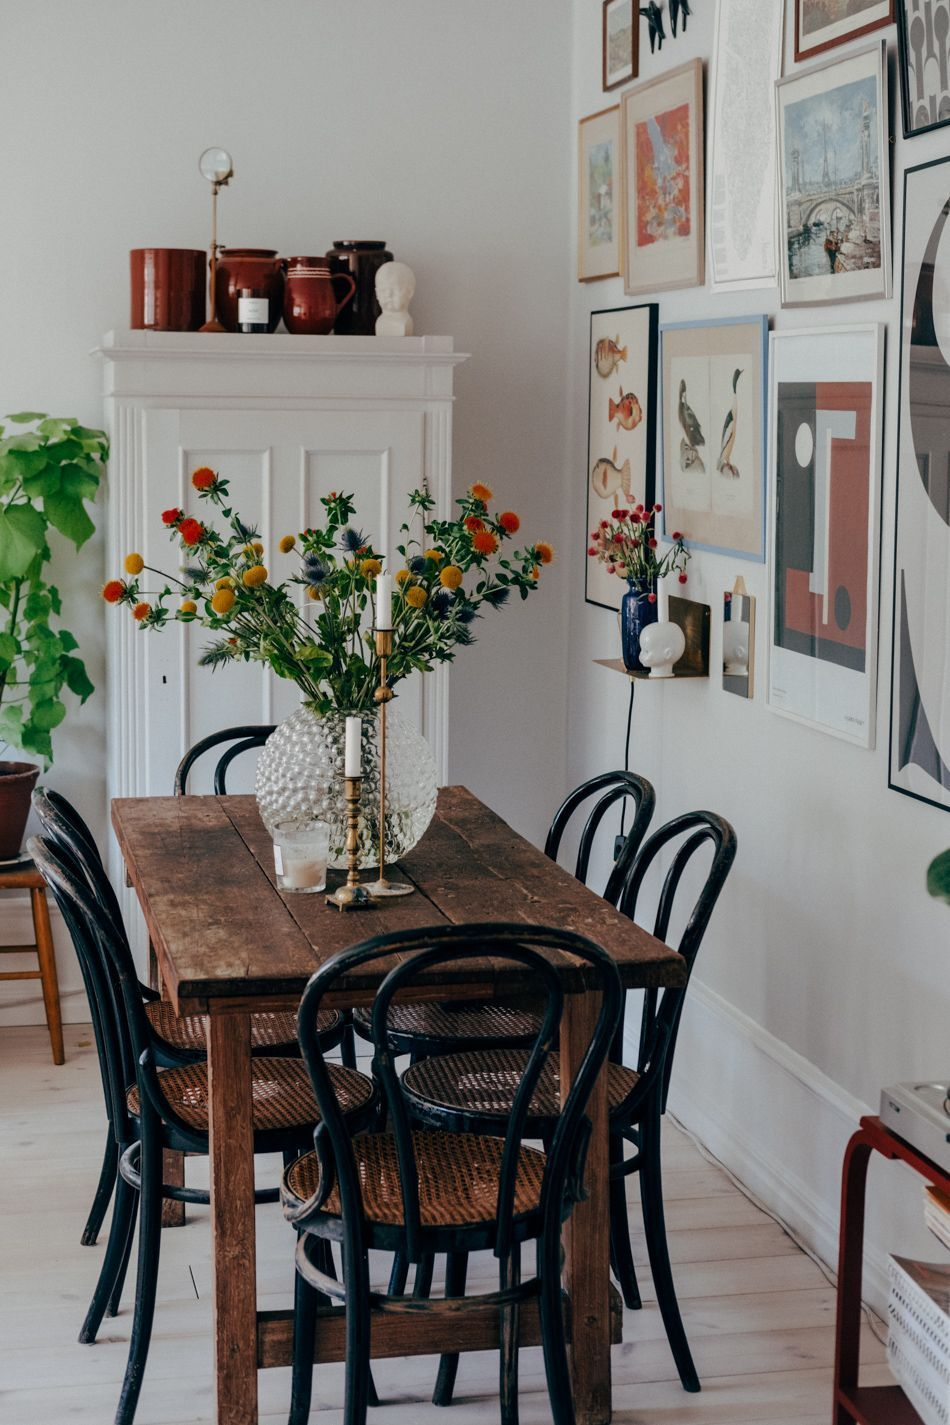 Photo of Where to find a farm table? | Elephant in the Room